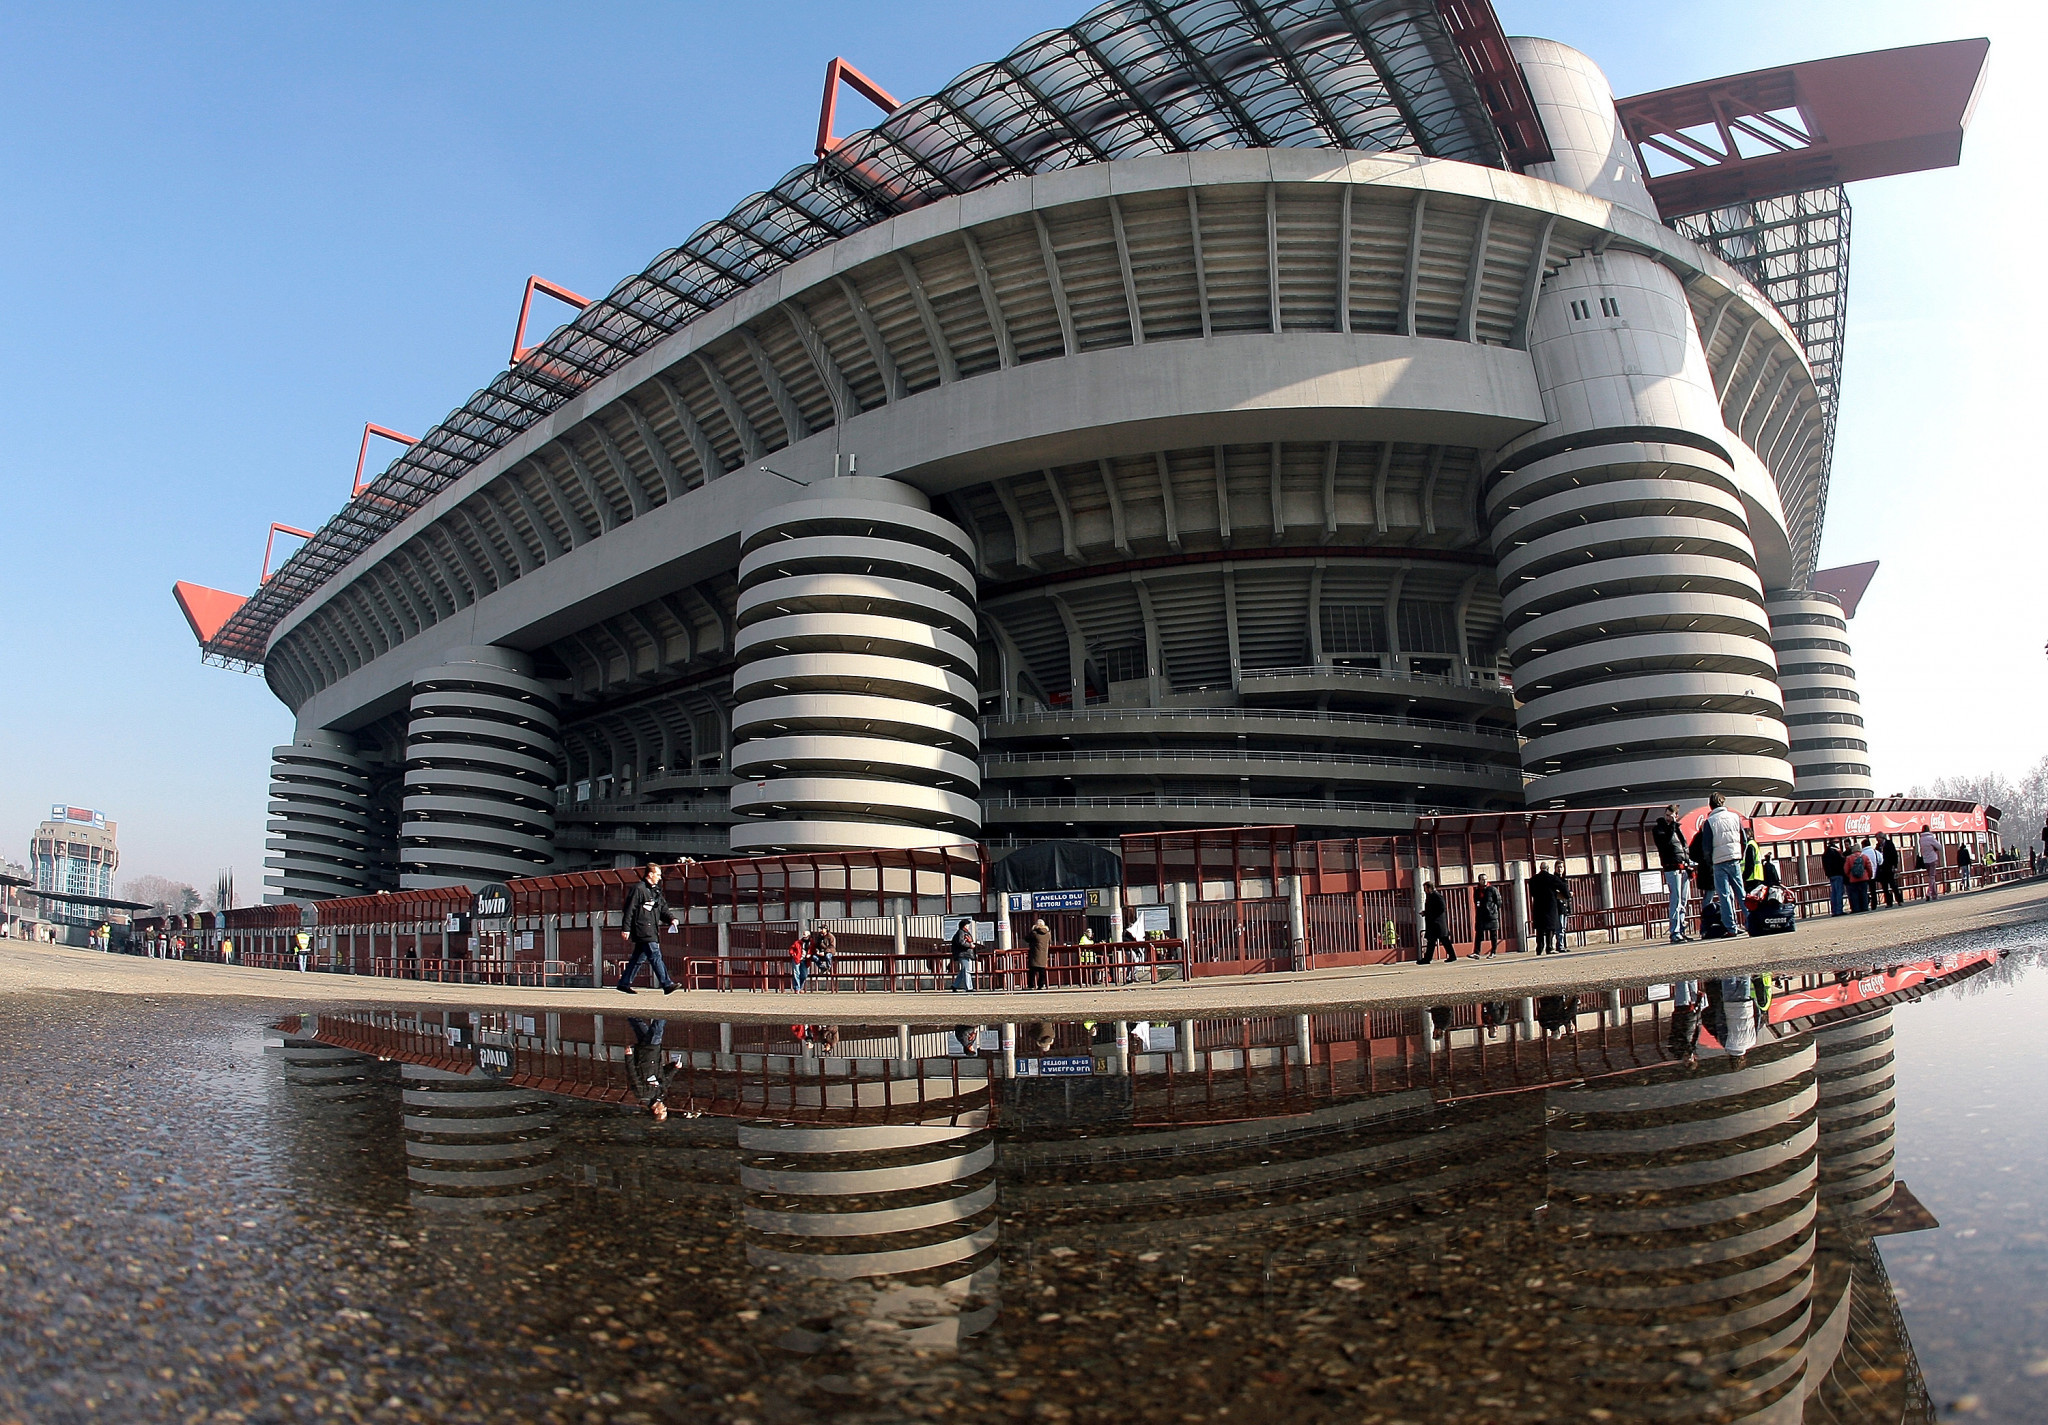 Debate continues over future of San Siro before 2026 Winter Olympic Games Opening Ceremony